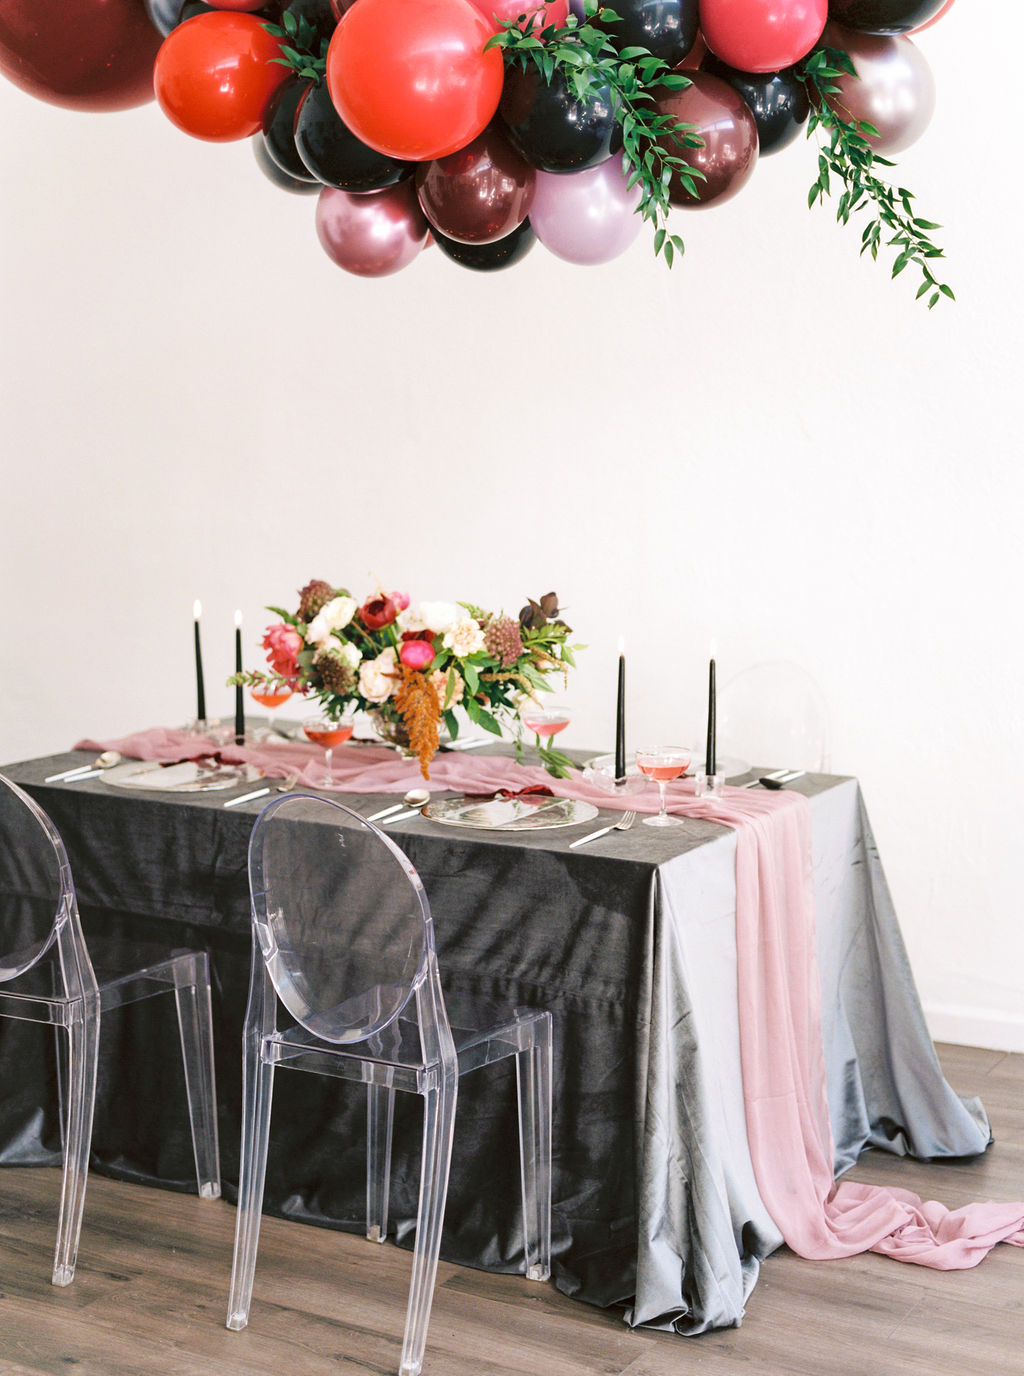 Table linens for New Year, events, and wedding ideas